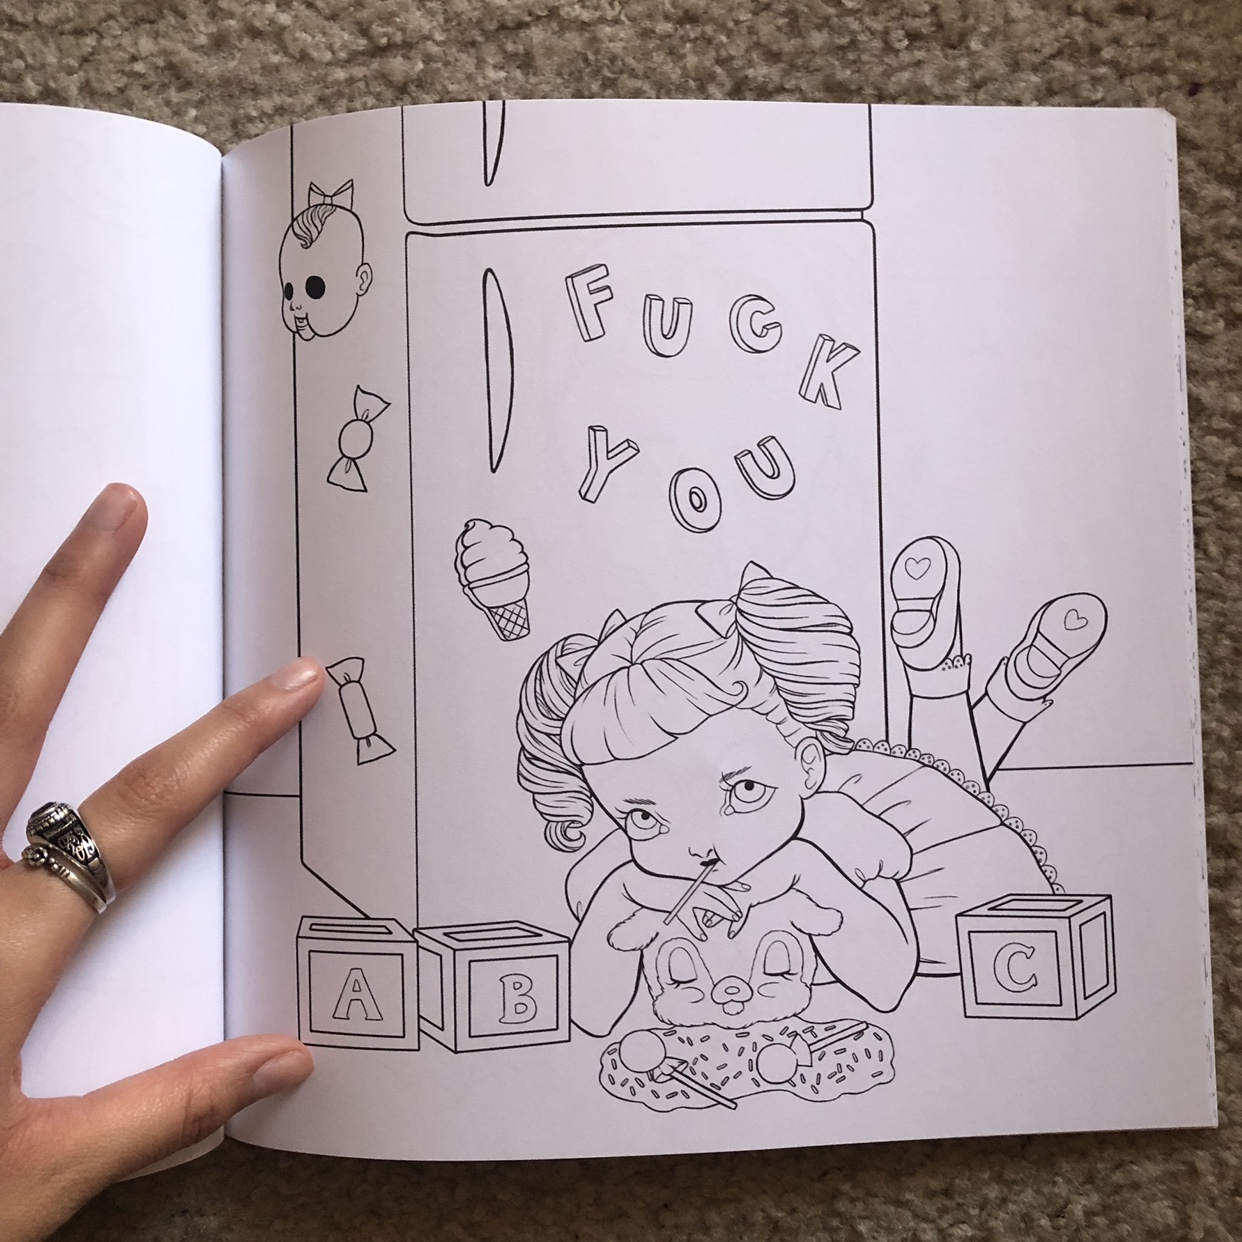 - Melanie Martinez Crybaby Coloring Book. I Got This... - Depop